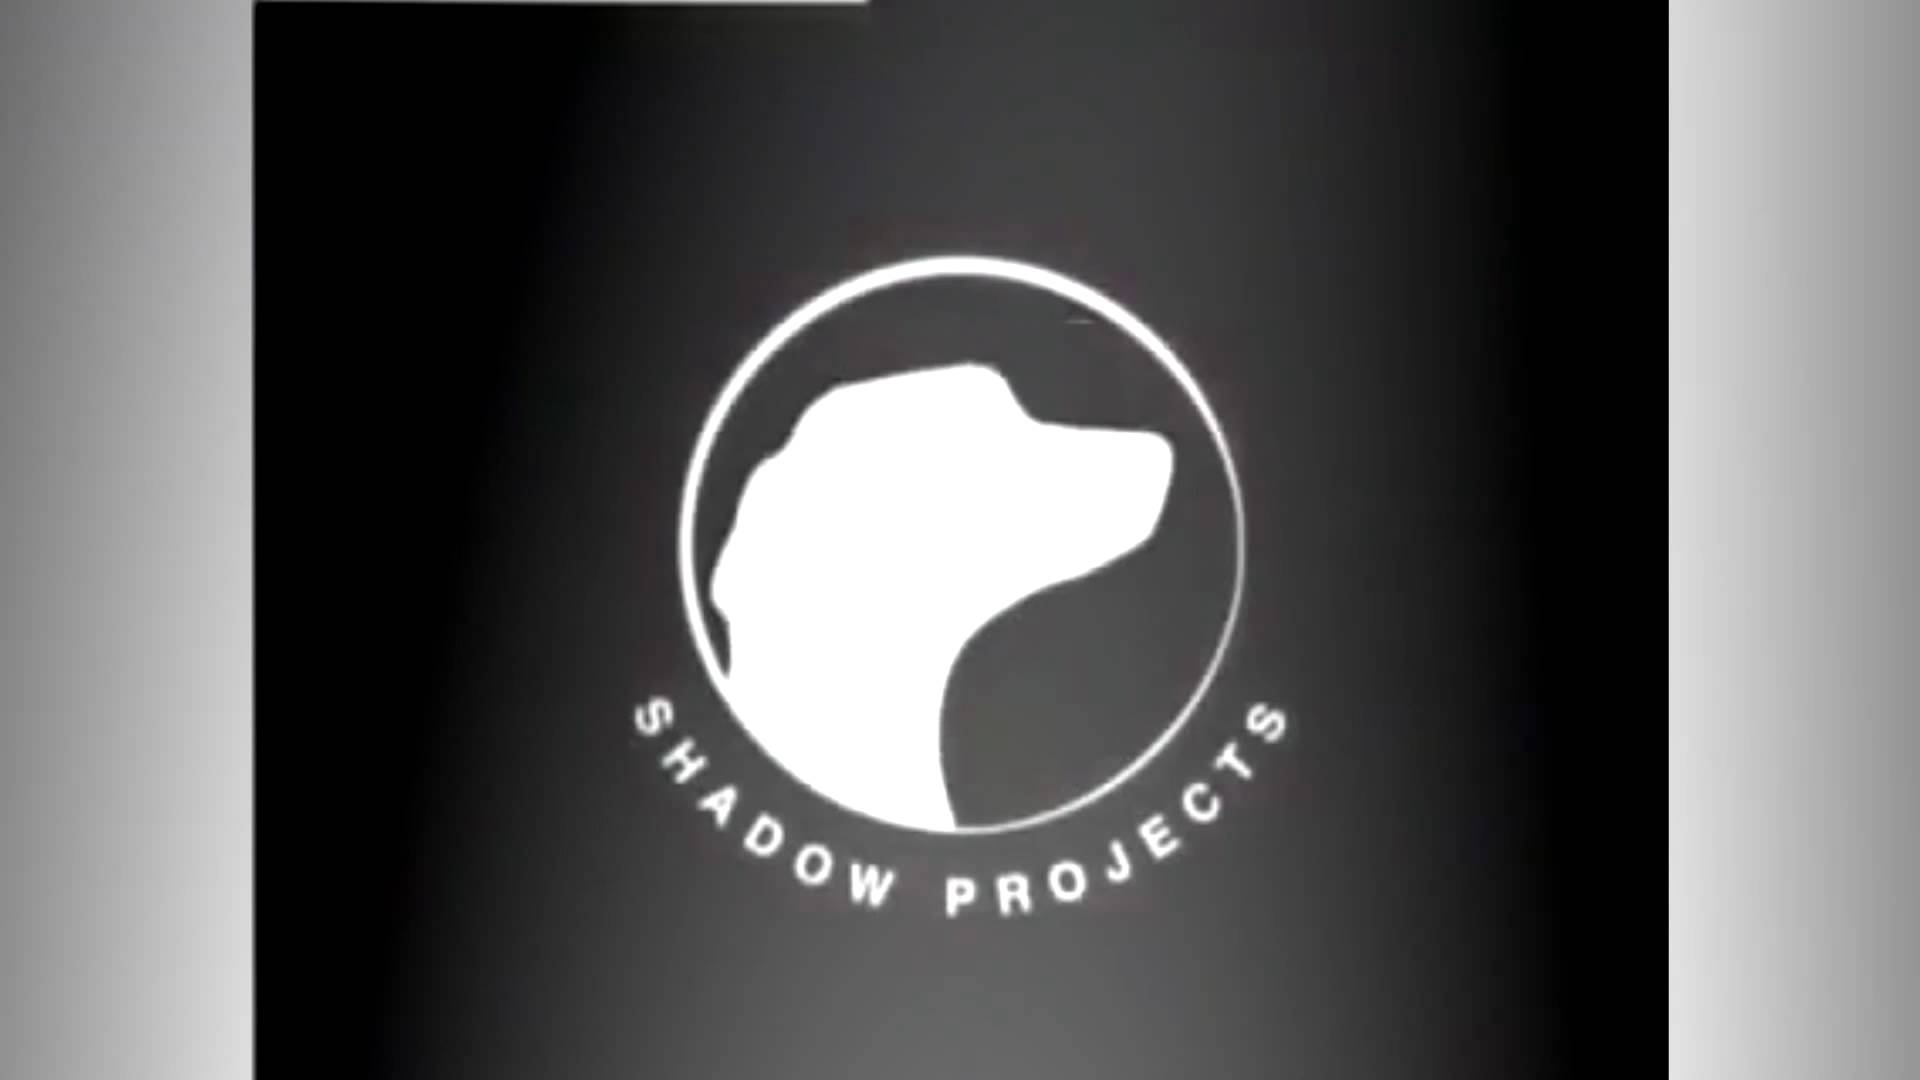 Shadow projects Logos.